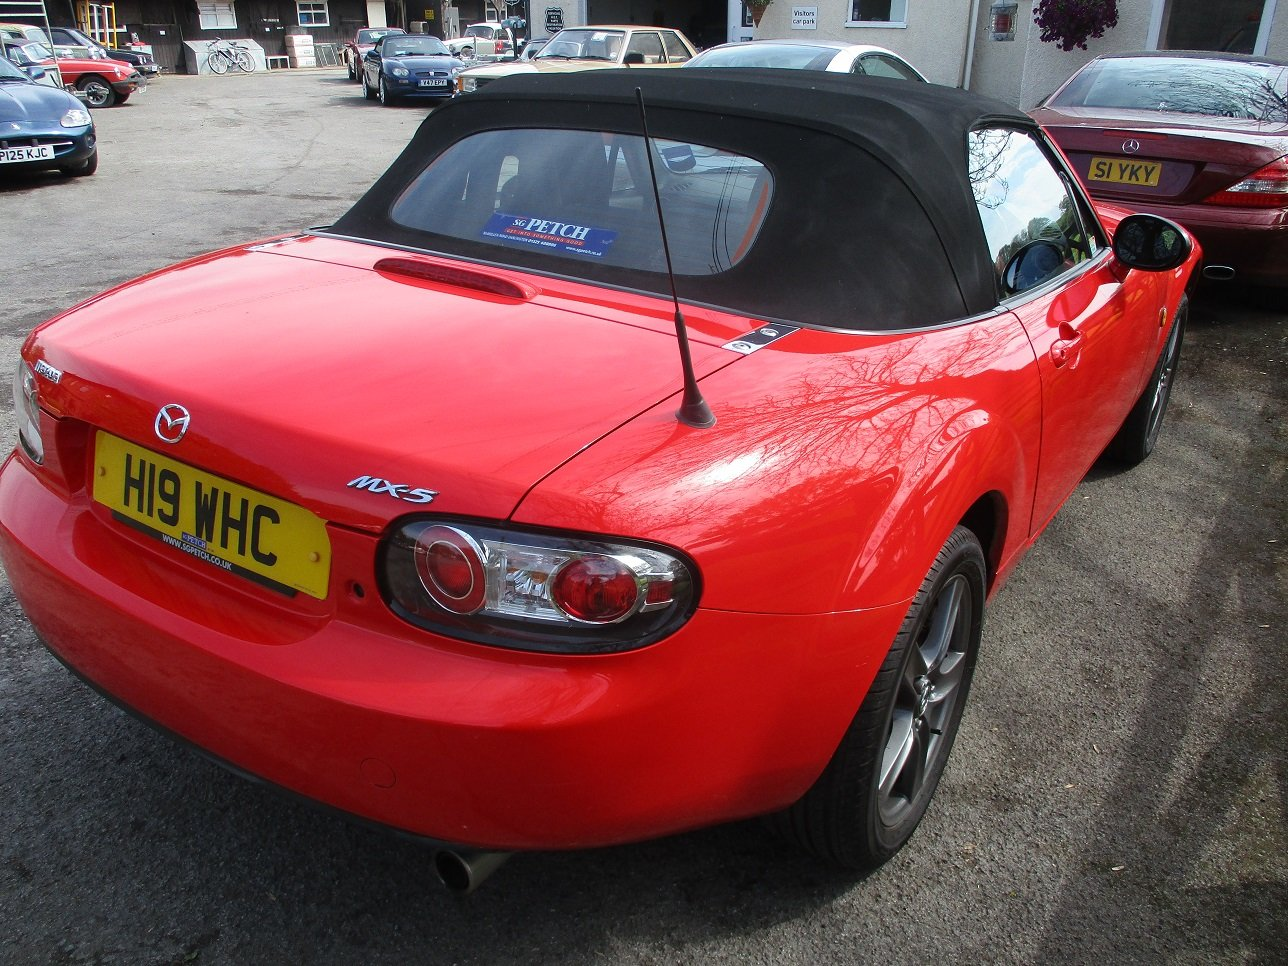 2007 Maxda MX-5 - Great Condition For Sale (picture 2 of 4)